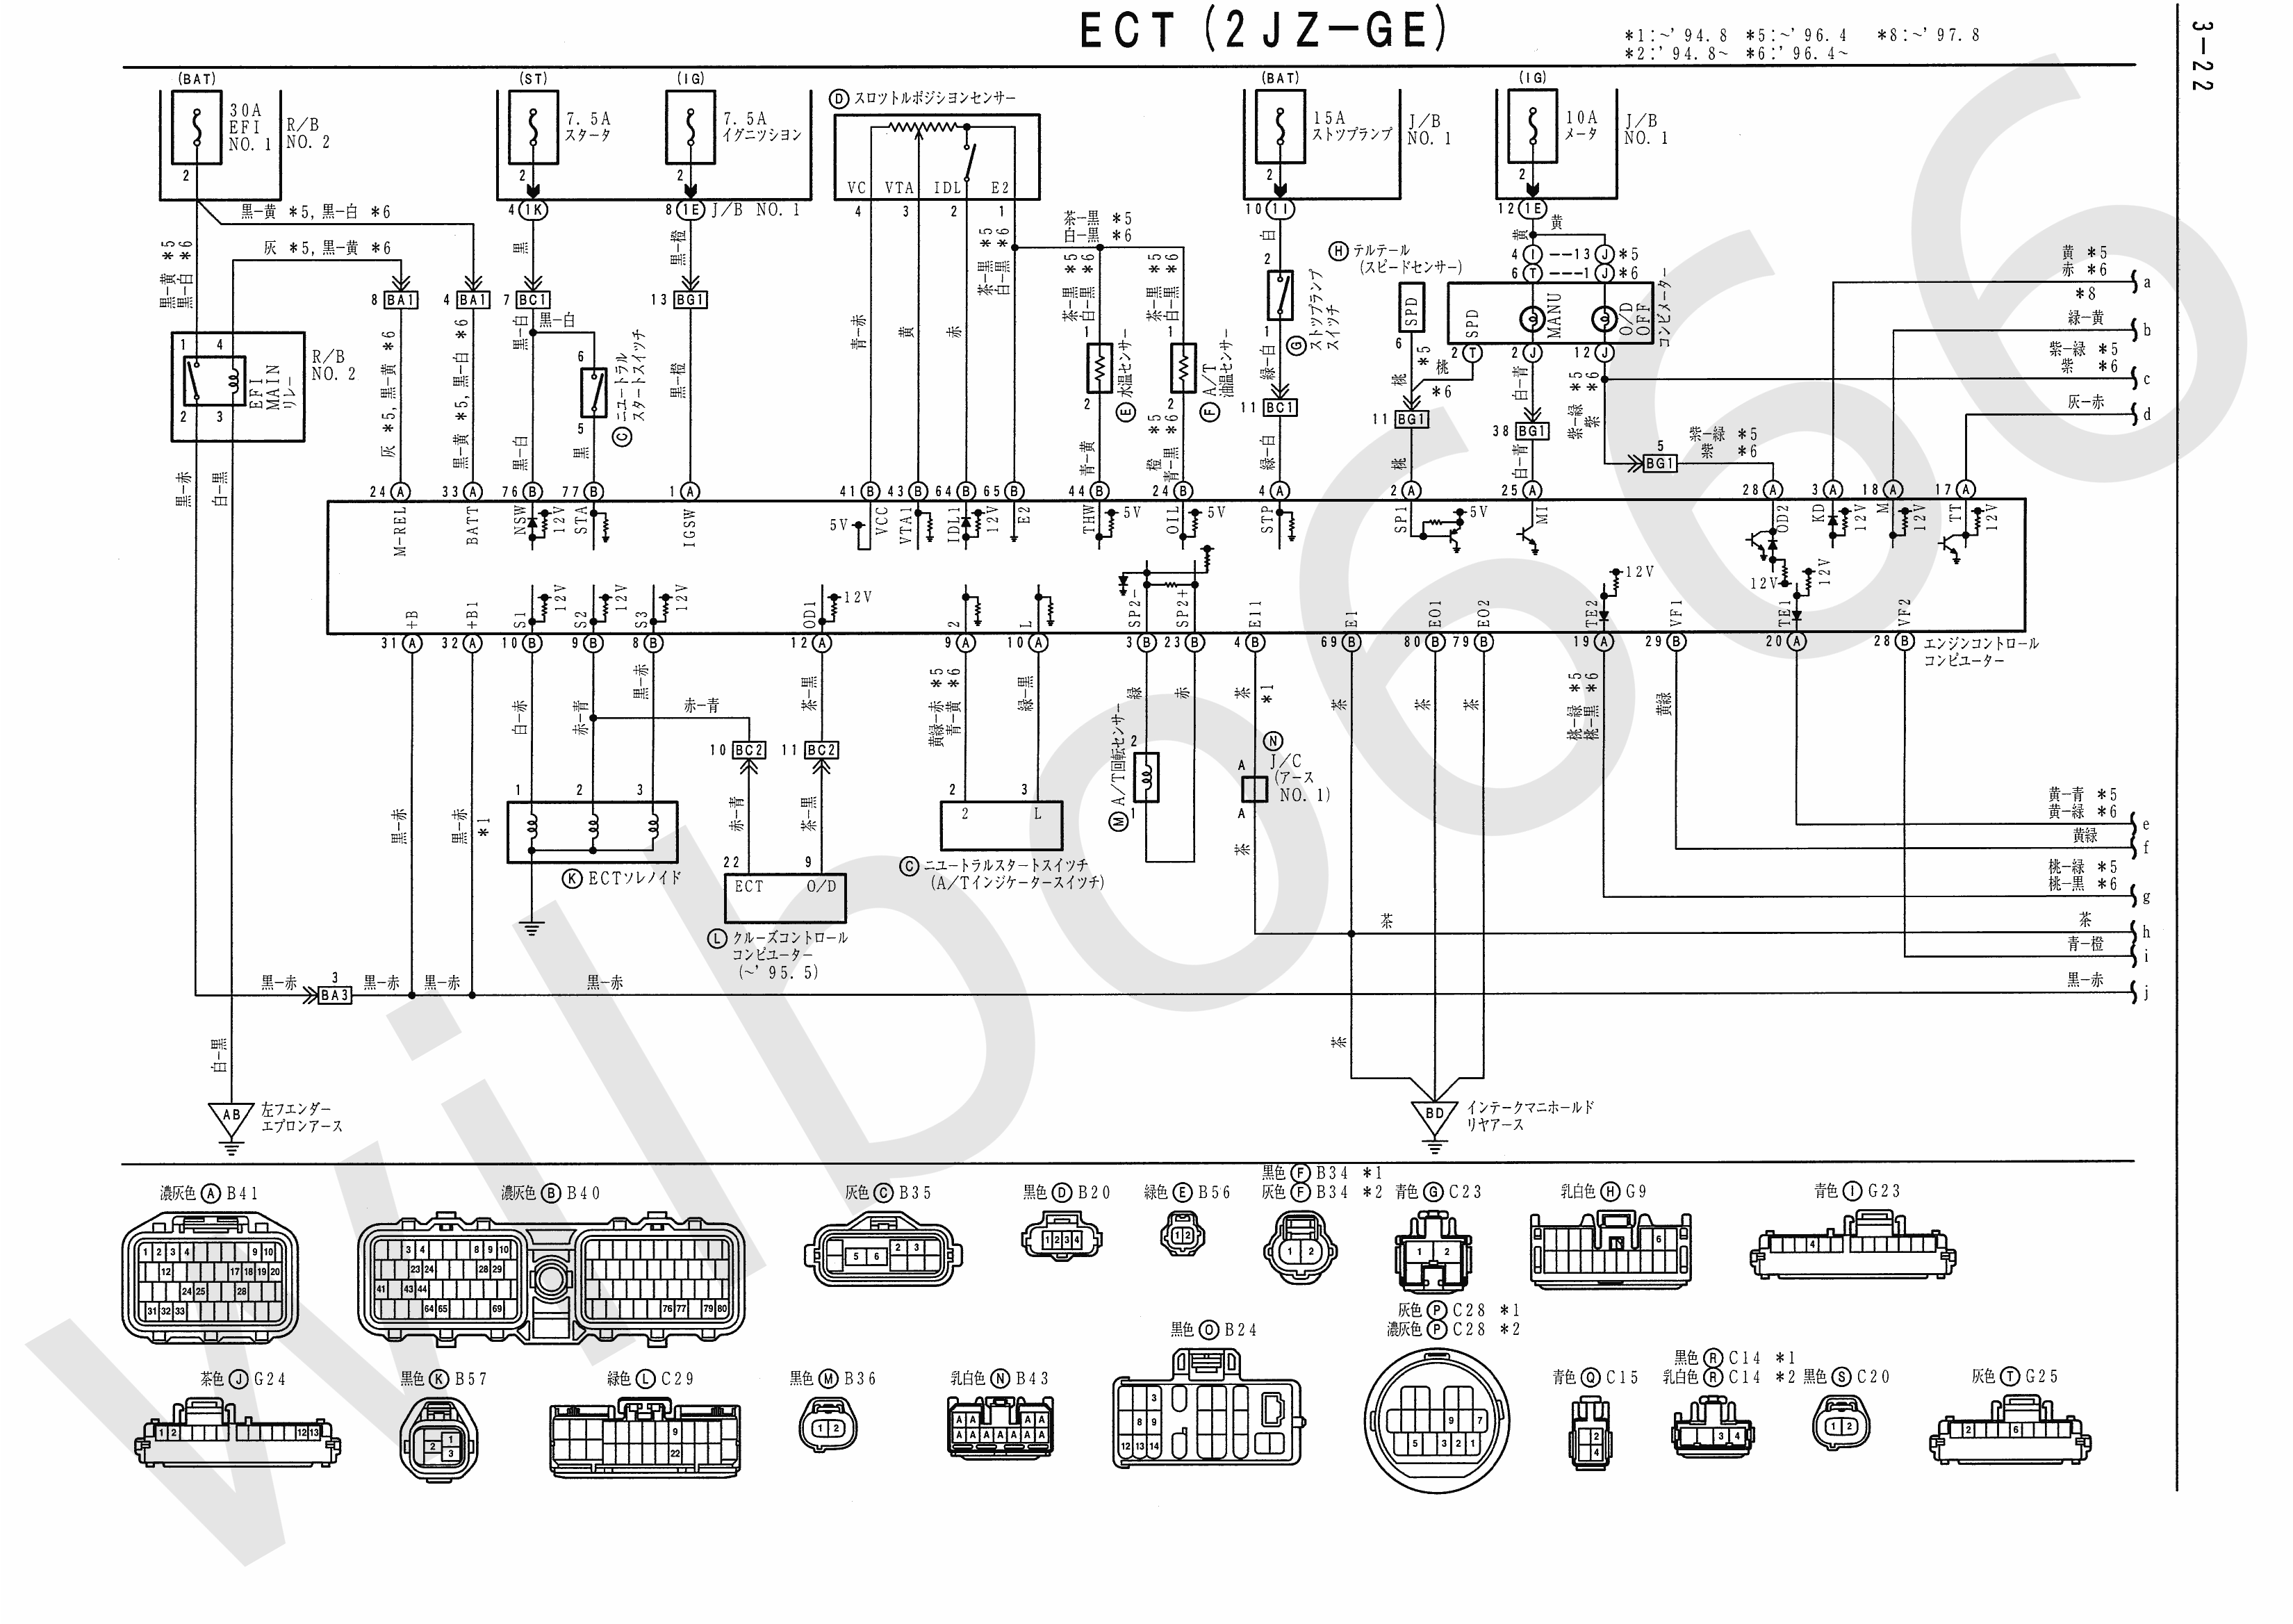 1993 2jz Ge Wiring Diagram Another Blog About Electric House Wilbo666 Jza80 Supra Engine Rh Pbworks Com